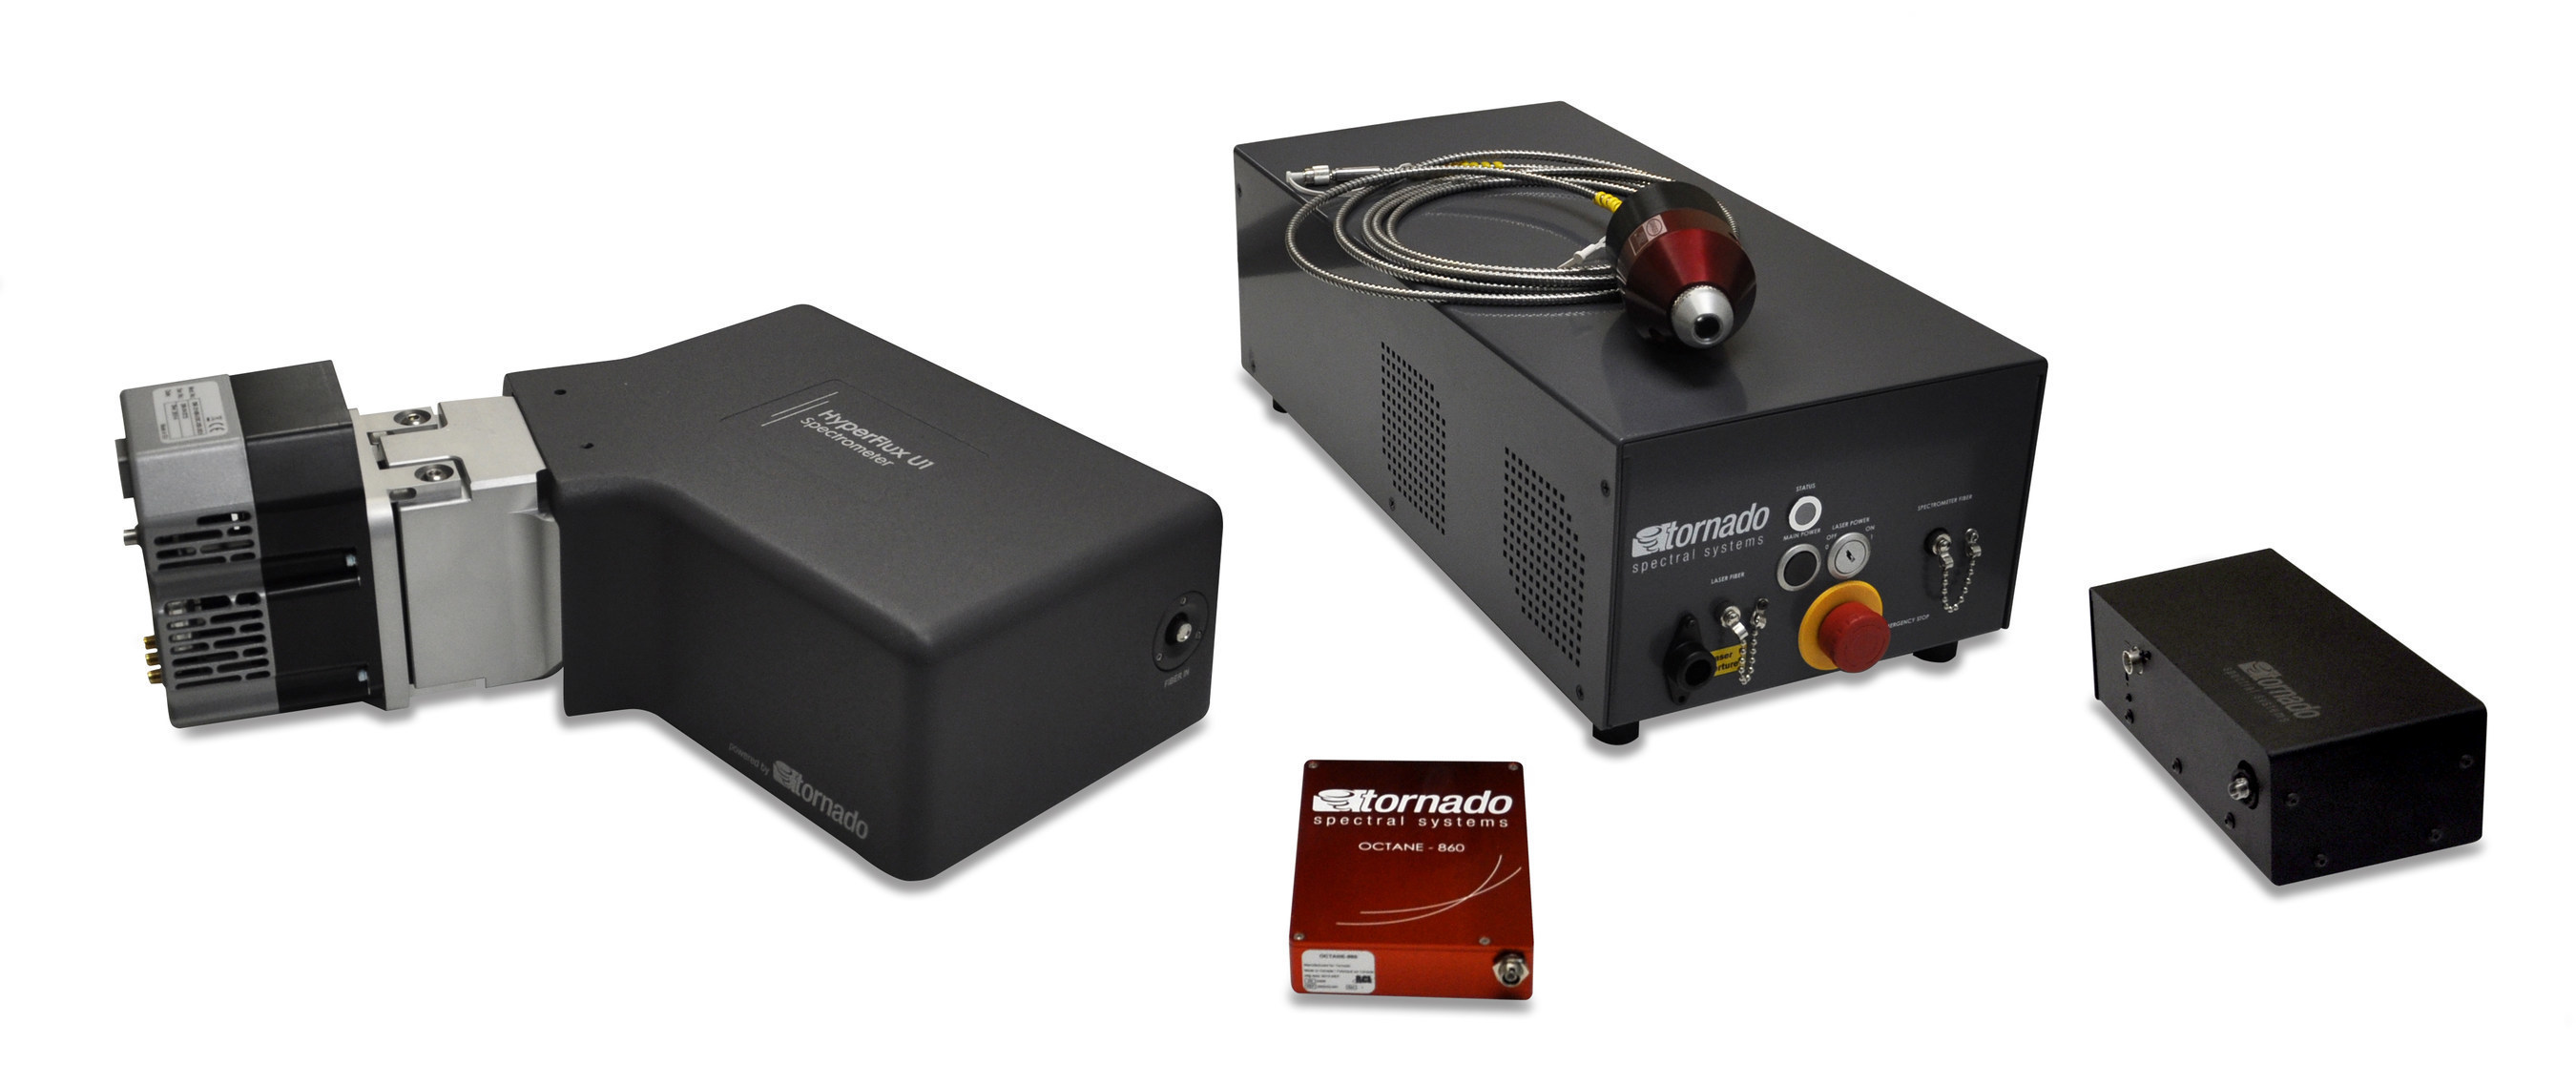 Tornado's compact high-performance spectrometers